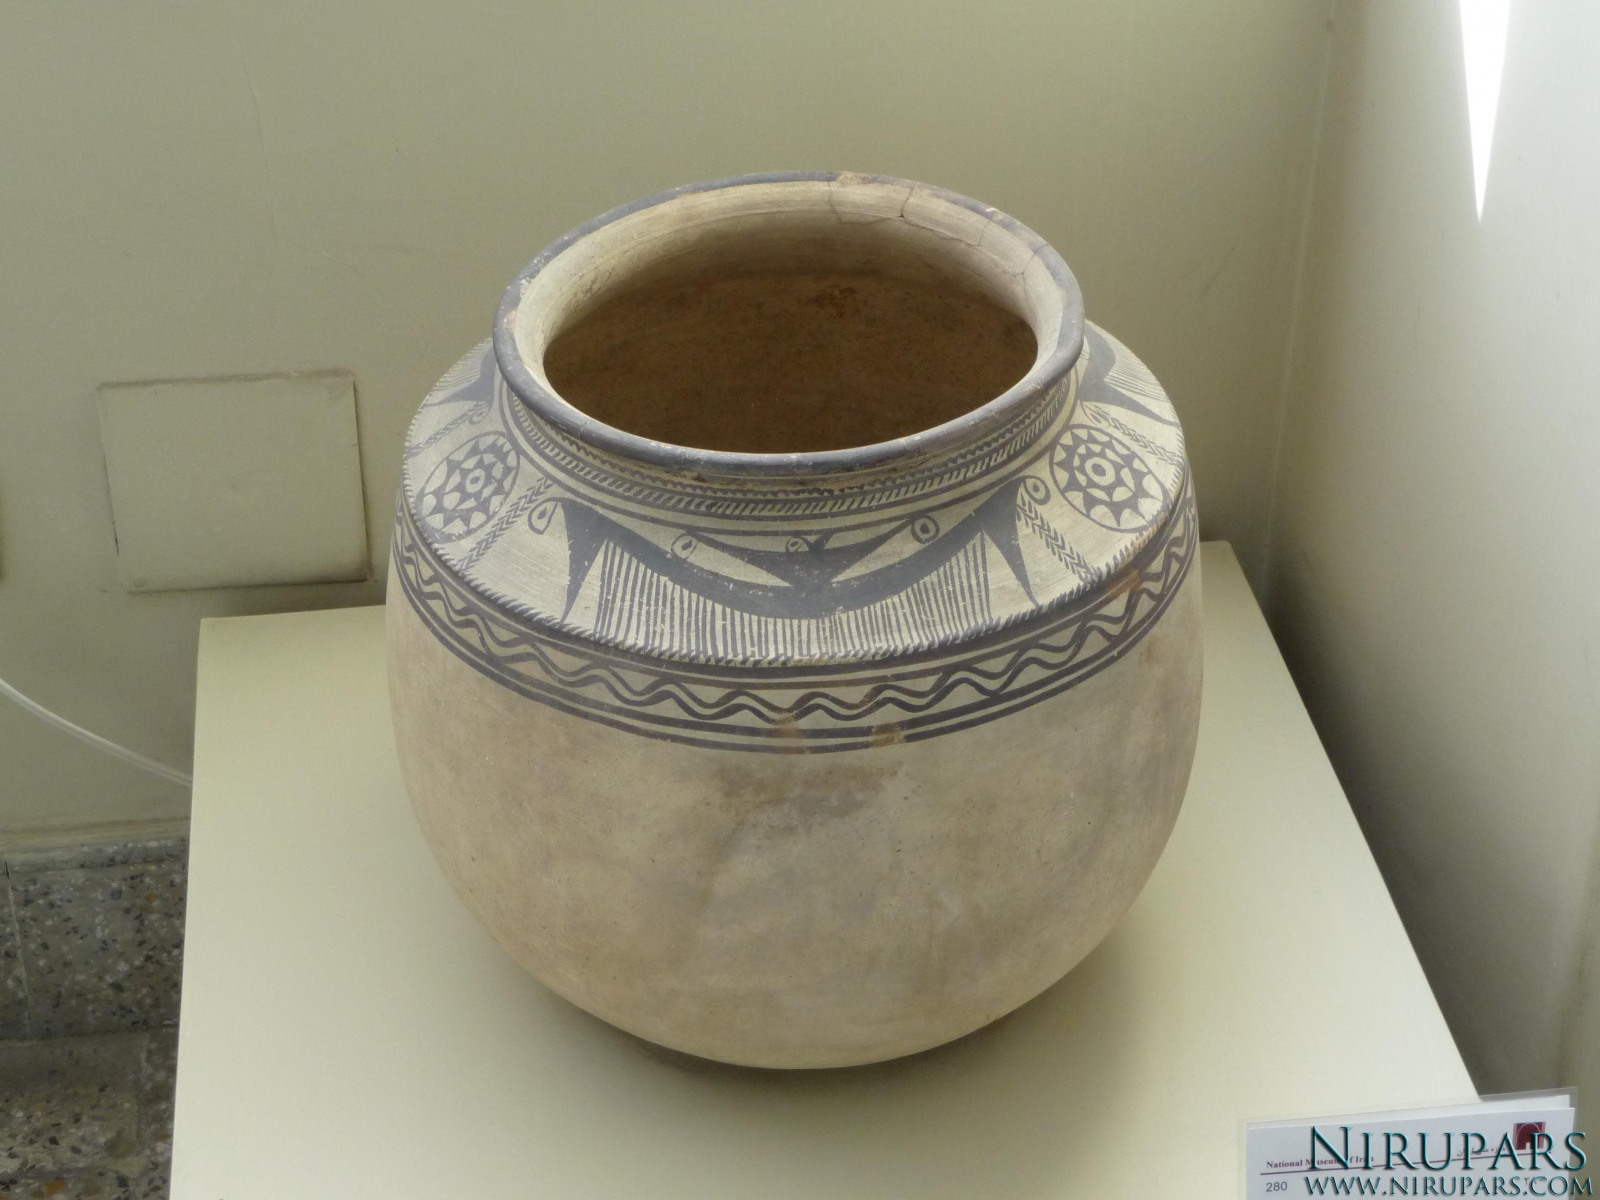 National Museum of Iran - Pottery Vessel